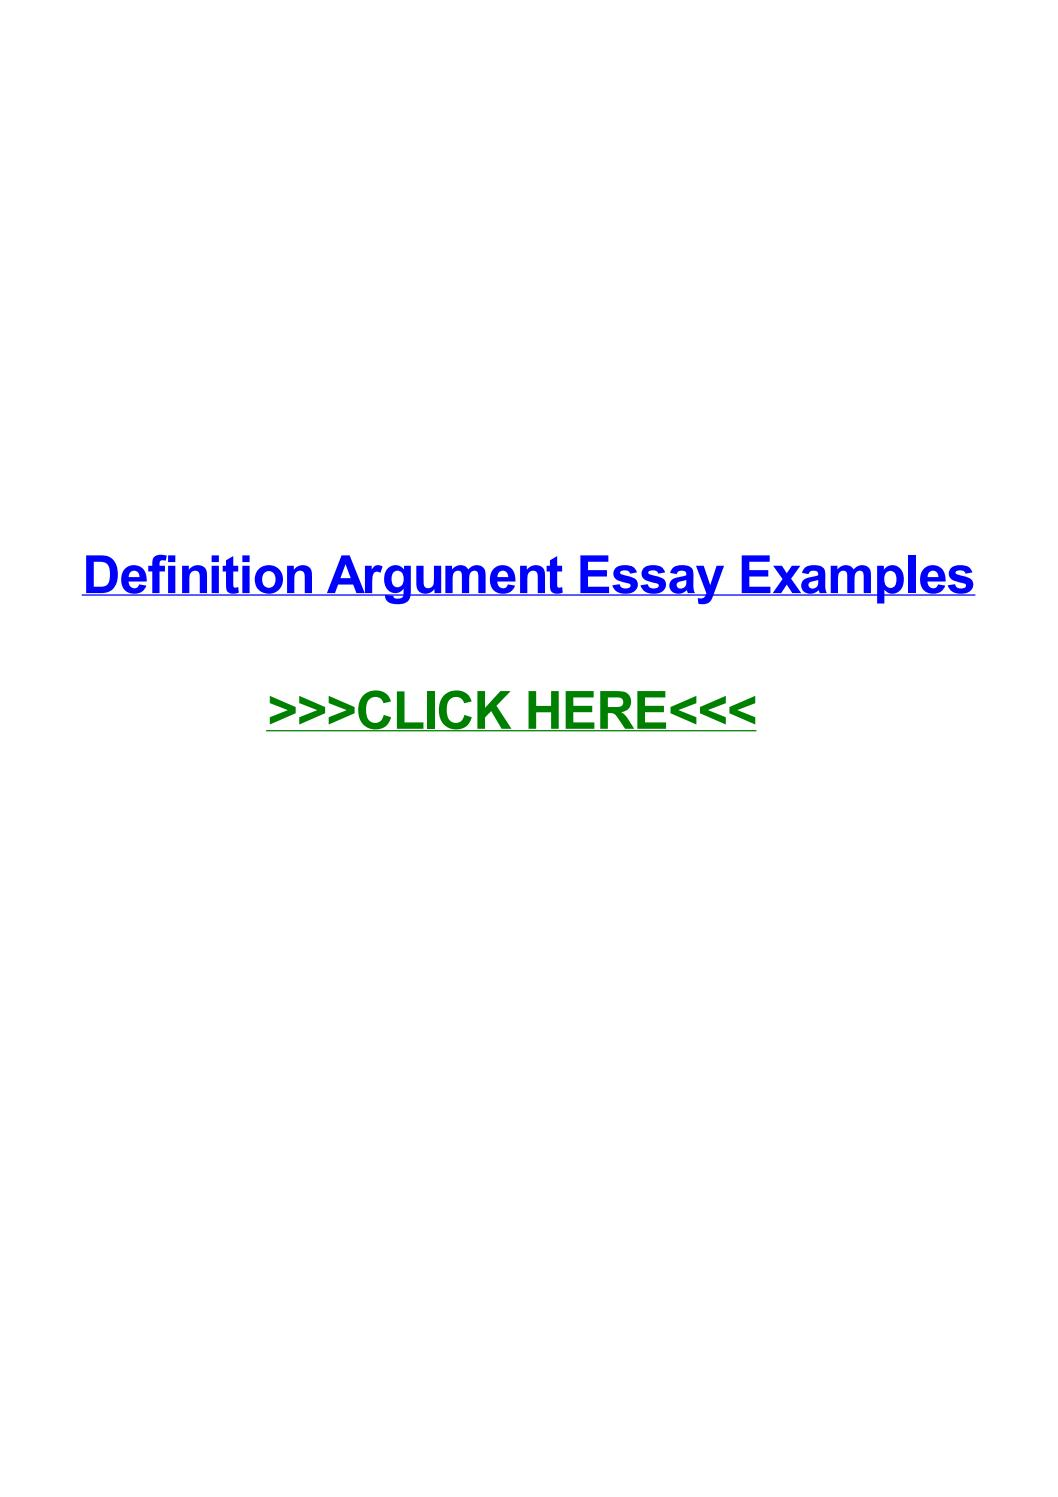 011 Essay Example Definition Argument Examples Page 1 Impressive Definitional Sample Full